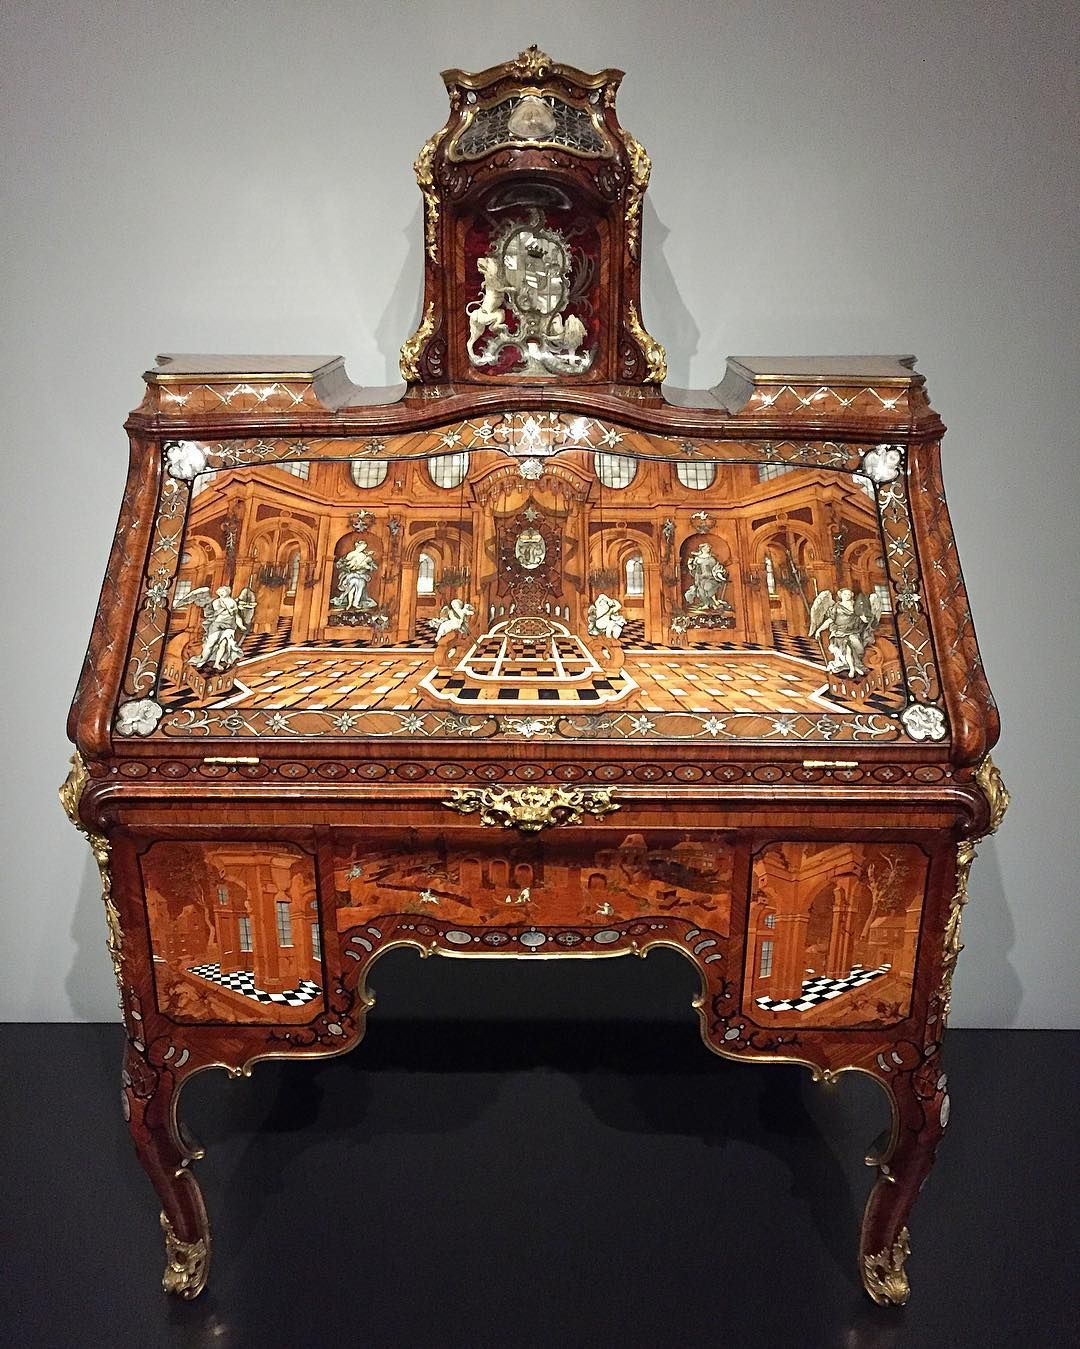 Barock Möbel Mannheim This Desk Is The Greatest Piece Ever Made By Abraham